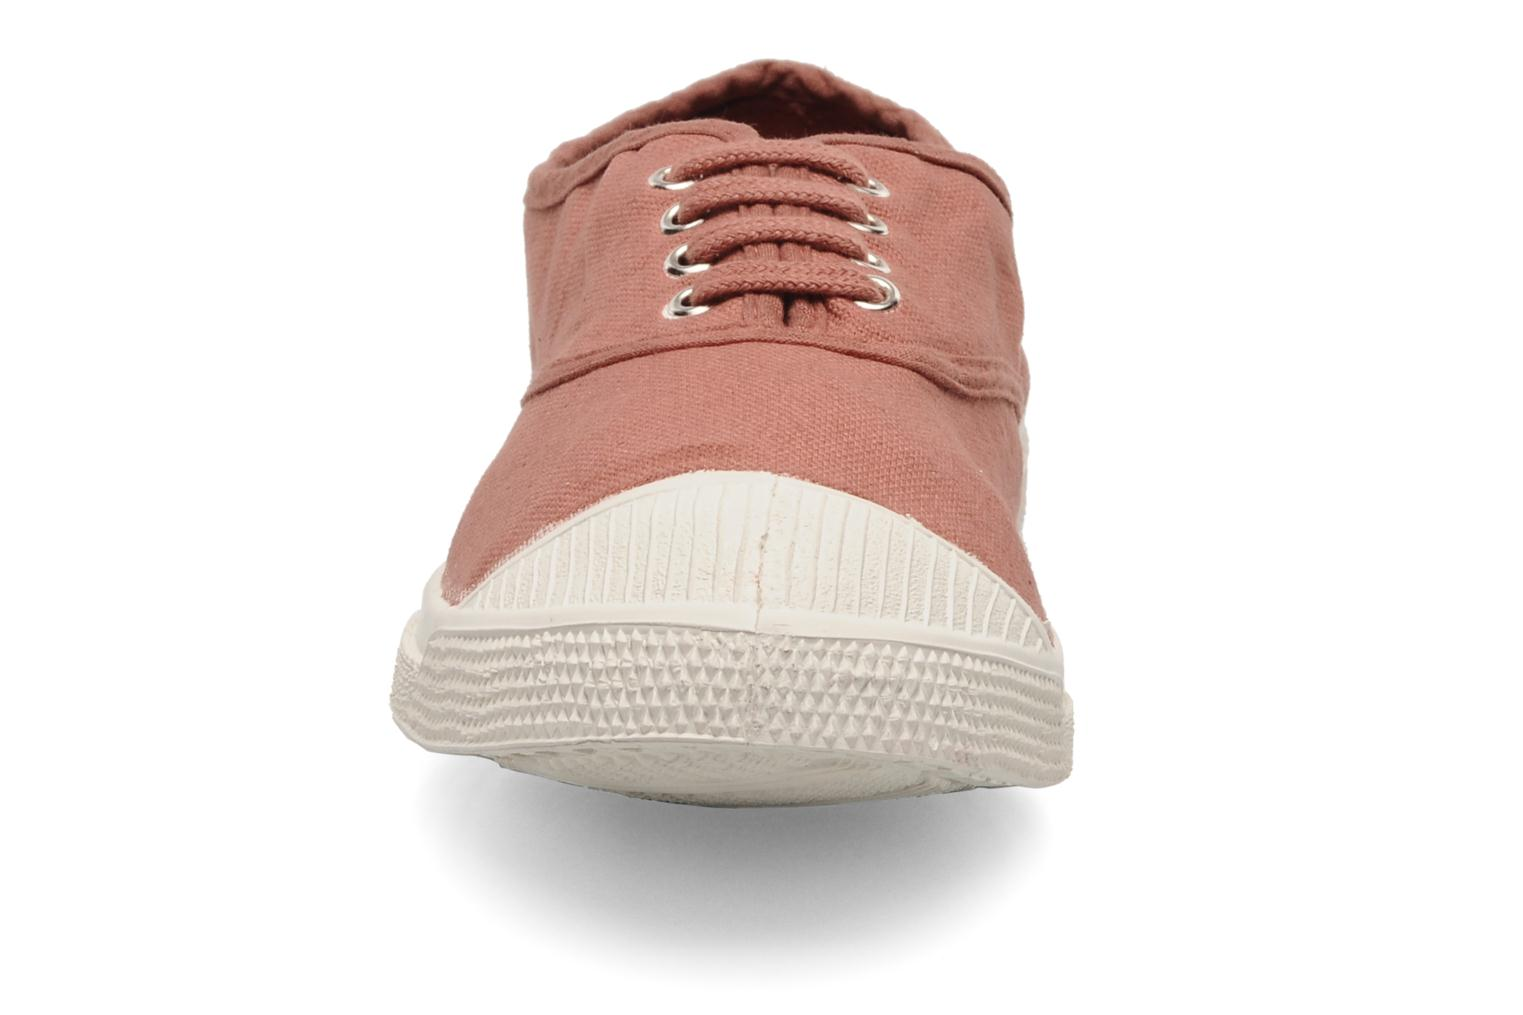 Lacets Vieux Bianco Rose Hkp97ra